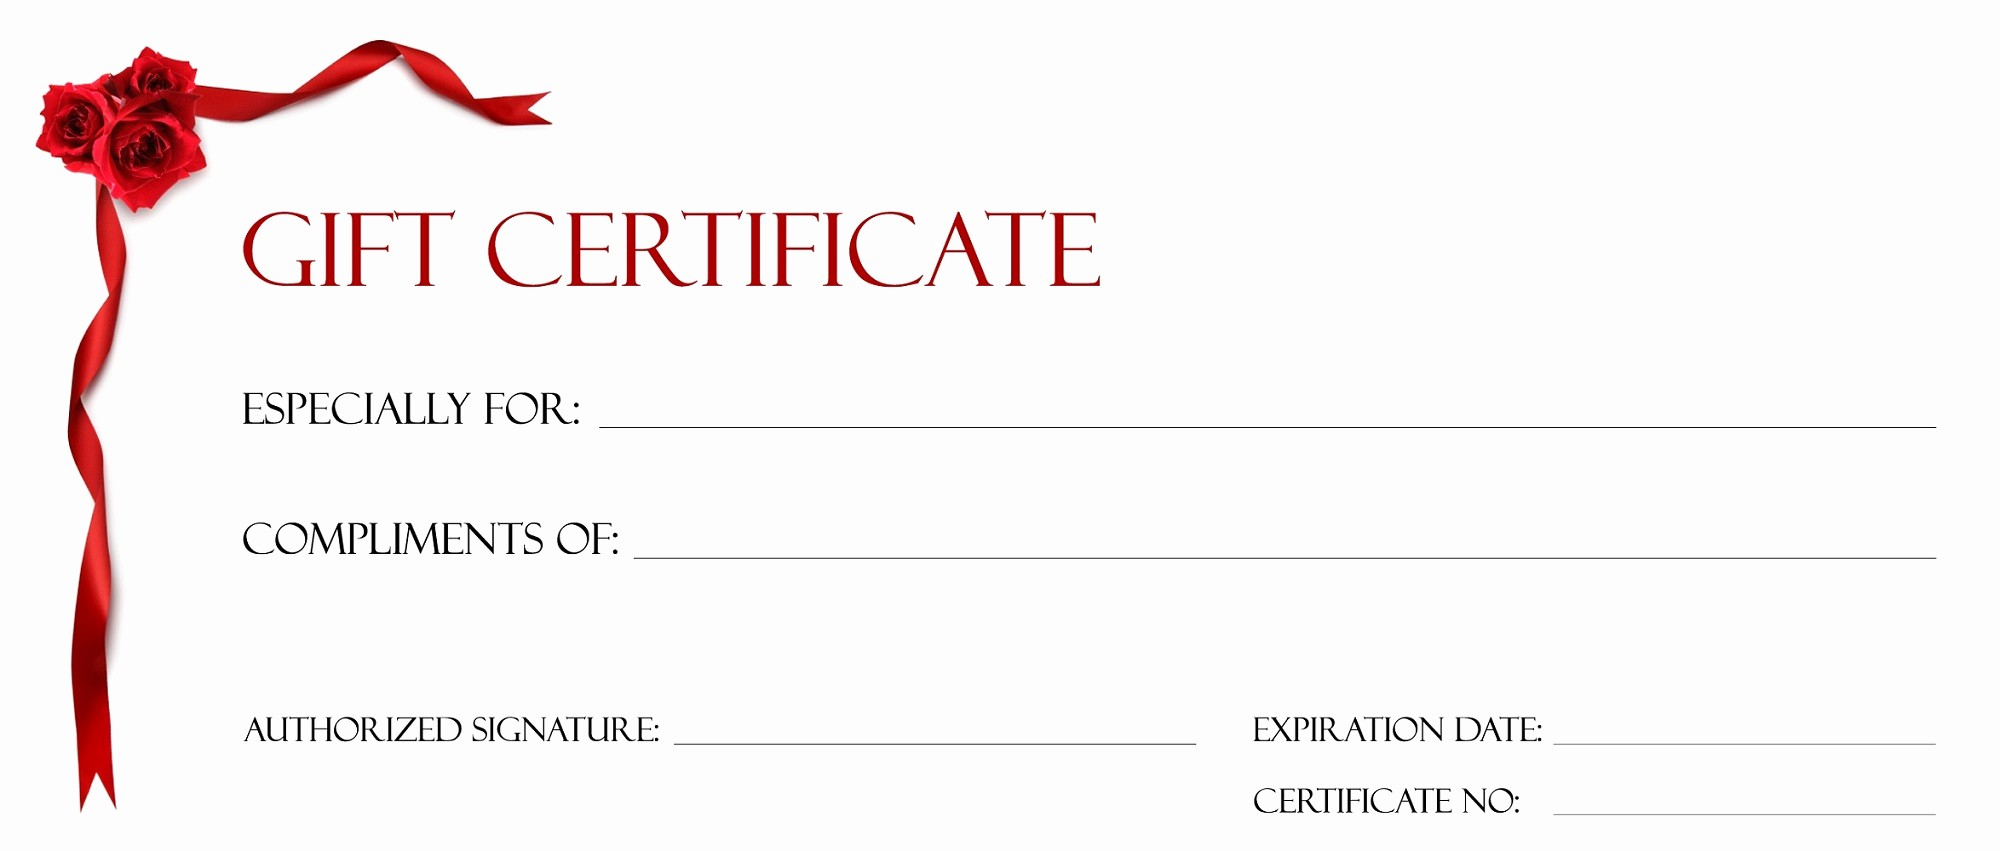 Create A Gift Certificate Free Best Of Gift Certificate Template for Kids Blanks